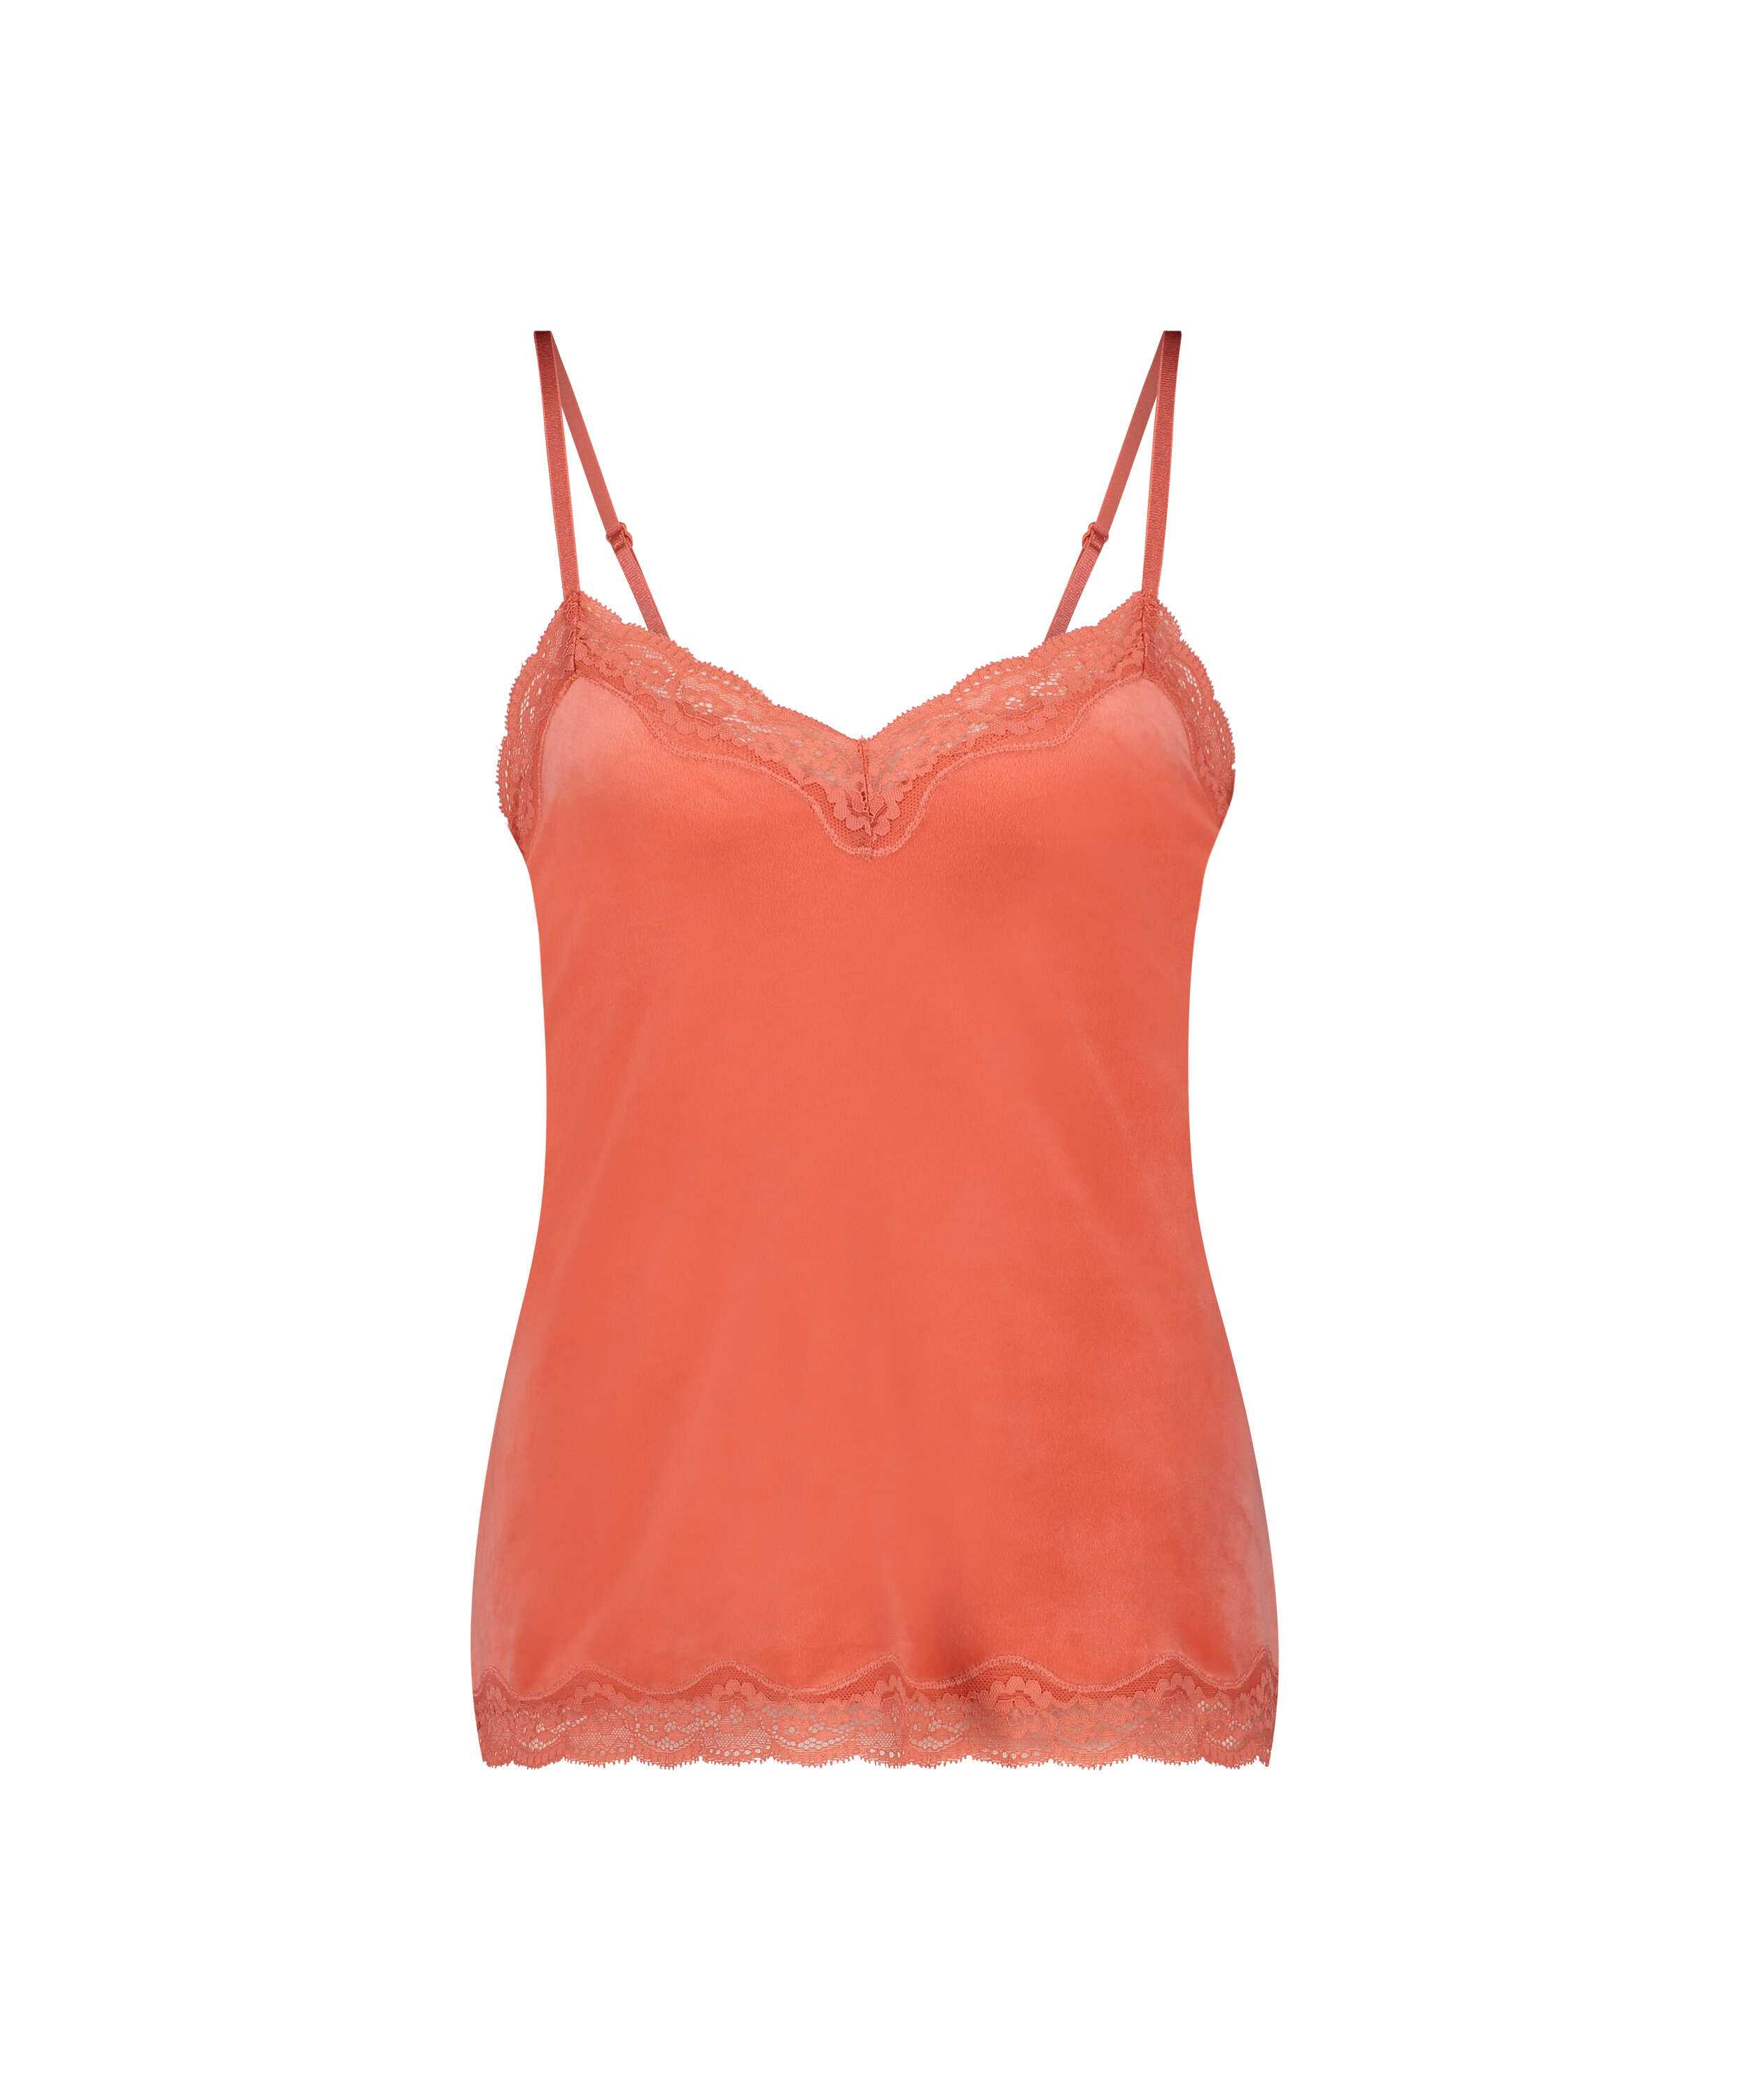 Camiseta Velours Lace, Naranja, main